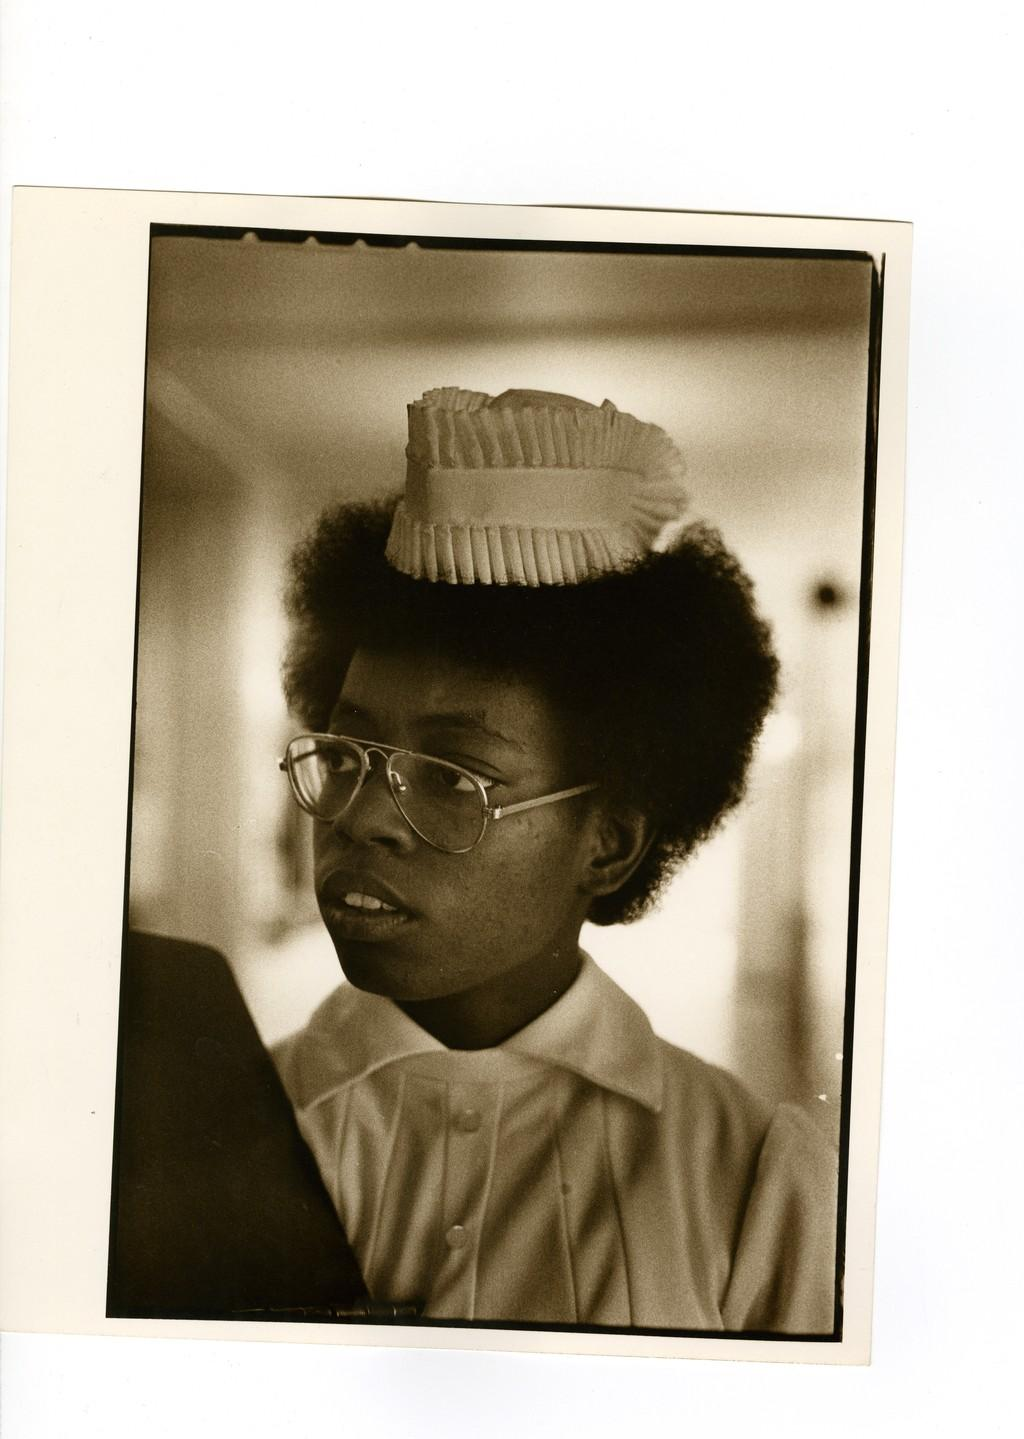 A portrait of a graduate nurse, 1970s